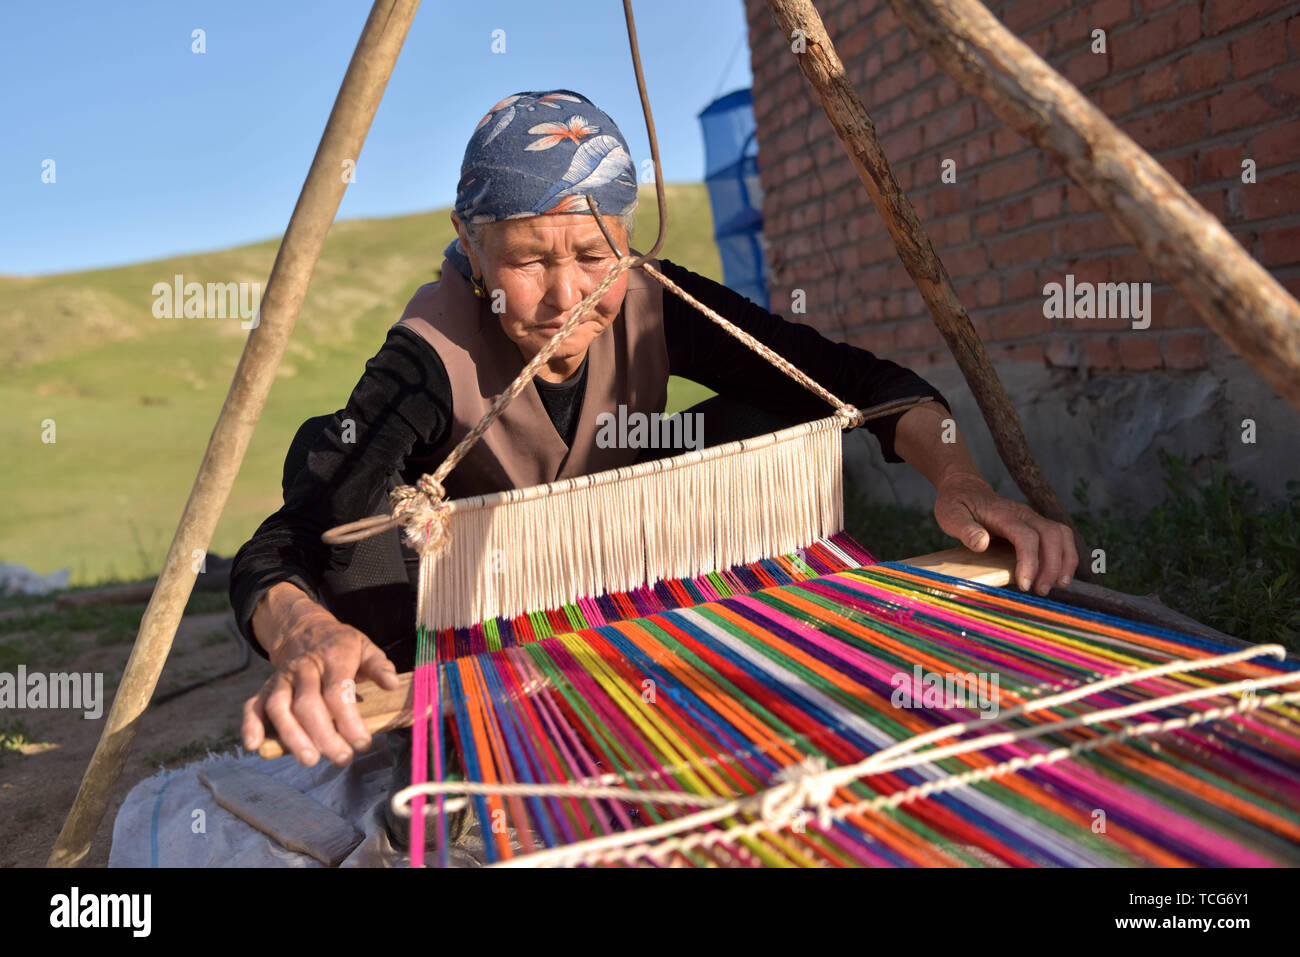 (190608) -- ALTAY, June 8, 2019 (Xinhua) -- A herdswoman is seen weaving in a pasturing area at Fuhai County of Altay, northwest China's Xinjiang Uygur Autonomous Region, on June 5, 2019. As summer comes, herdsmen of Kazak ethnic group here are busy with transferring livestock to summer pastures. (Xinhua/Ding Lei) - Stock Image